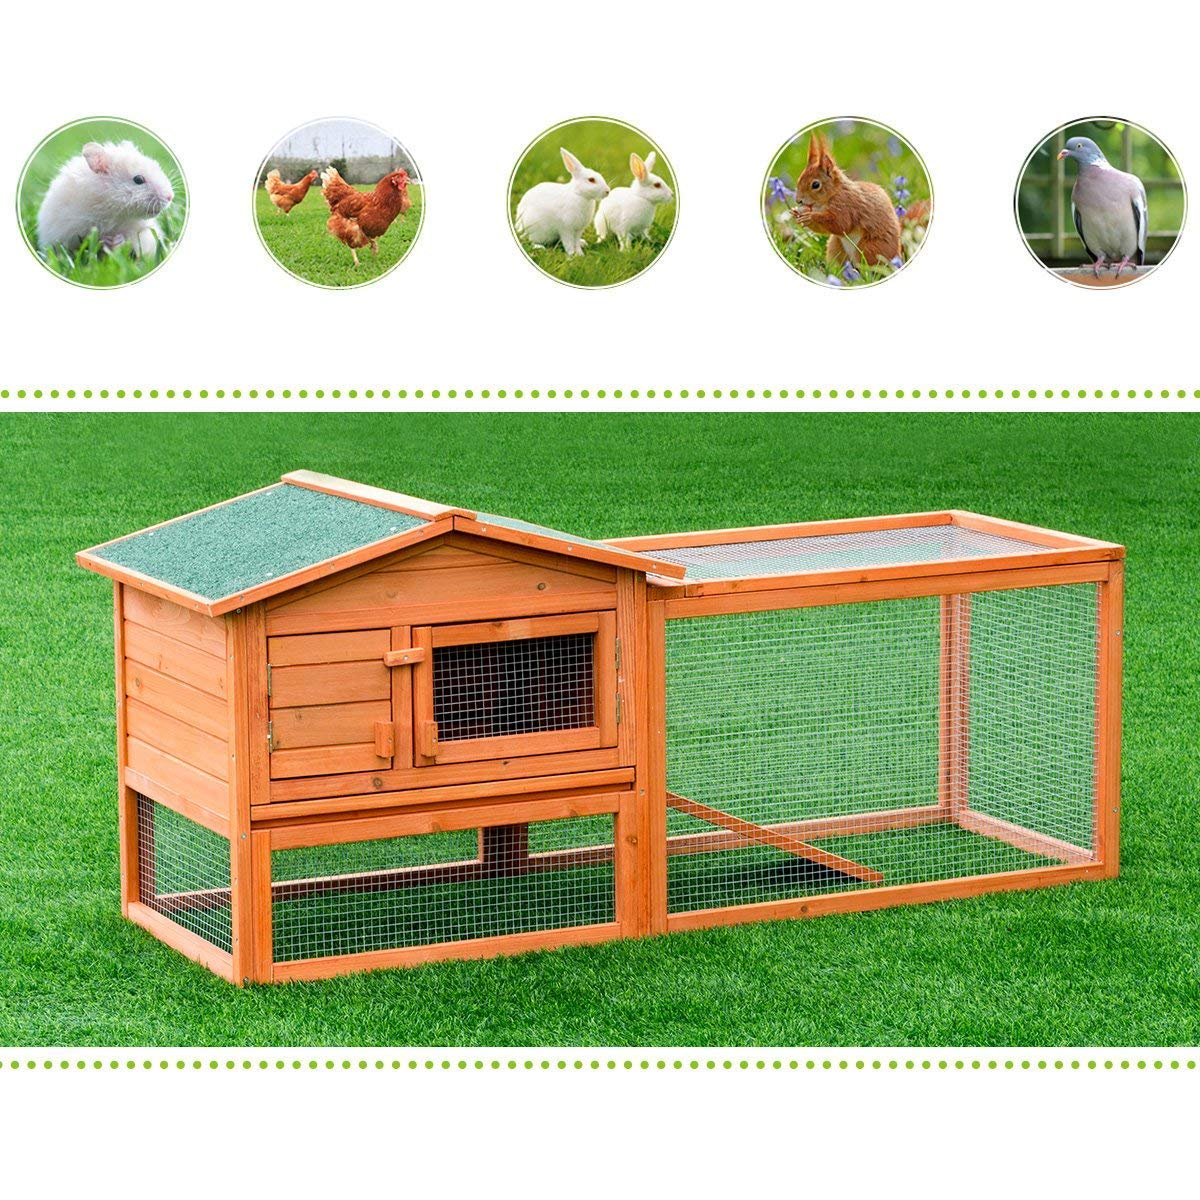 Tangkula Chicken Coop Outdoor Wooden Chicken Coop Garden Backyard Farm Bunny Hen House Rabbit Hutch Small Animal Cage Pet Supplies for Chicken, Duck, Rabbit, etc (61.5'' x 20.5'' x 27''(L x W x H)) by Tangkula (Image #4)